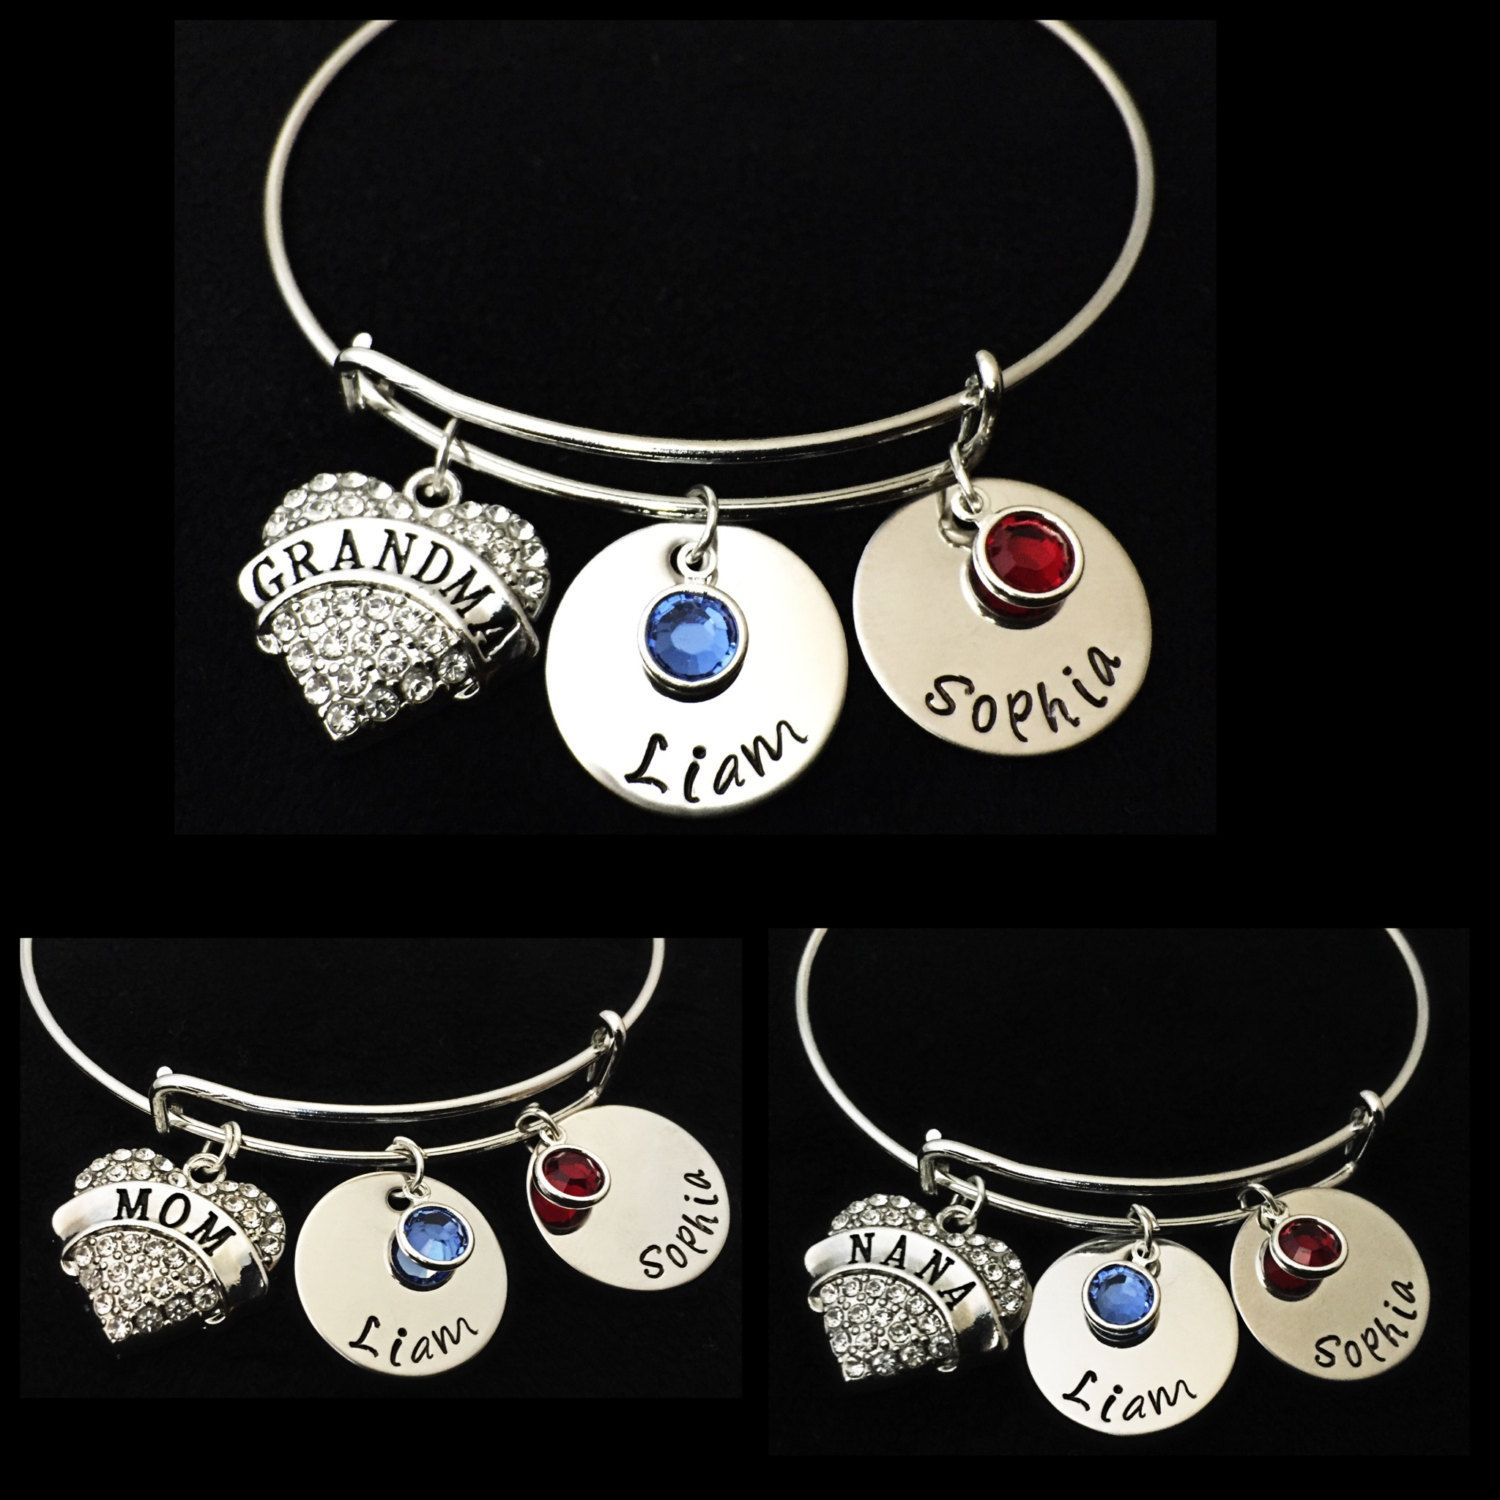 birthstones with necklace necklaces birthstone grandmother under will grandma inexpensive heart gold love grandkid